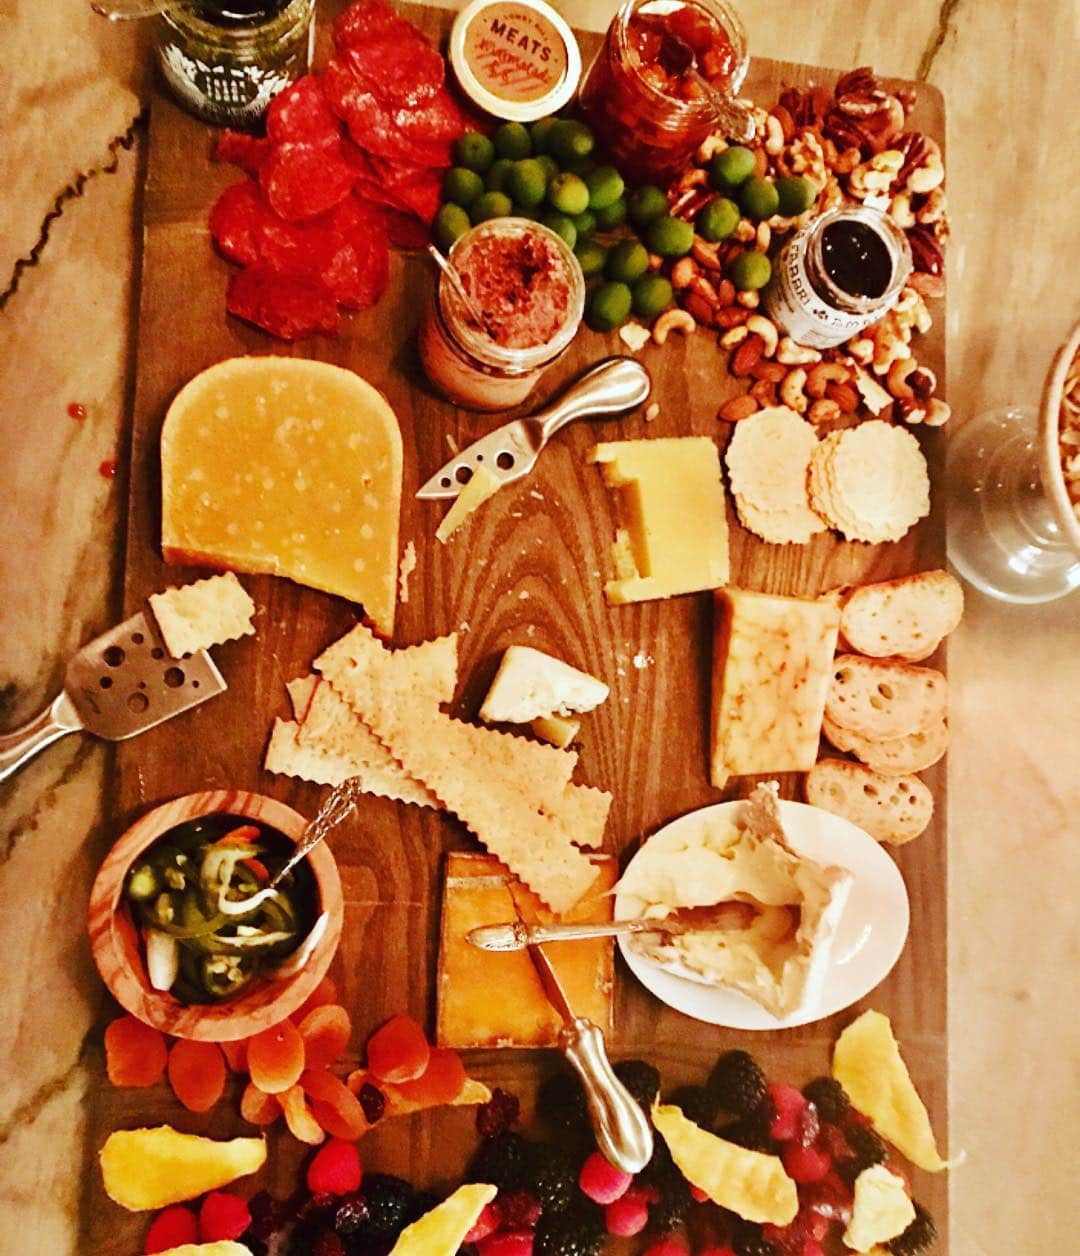 This is my friend Heathers amazing cheese board. This is not a restaurant but at her house! I love hanging with friends that entertain like Martha Stewart #weeklydish #stephaniesdish #cheese #cheeseboards #cheeseboardgoals #friendshipgoals